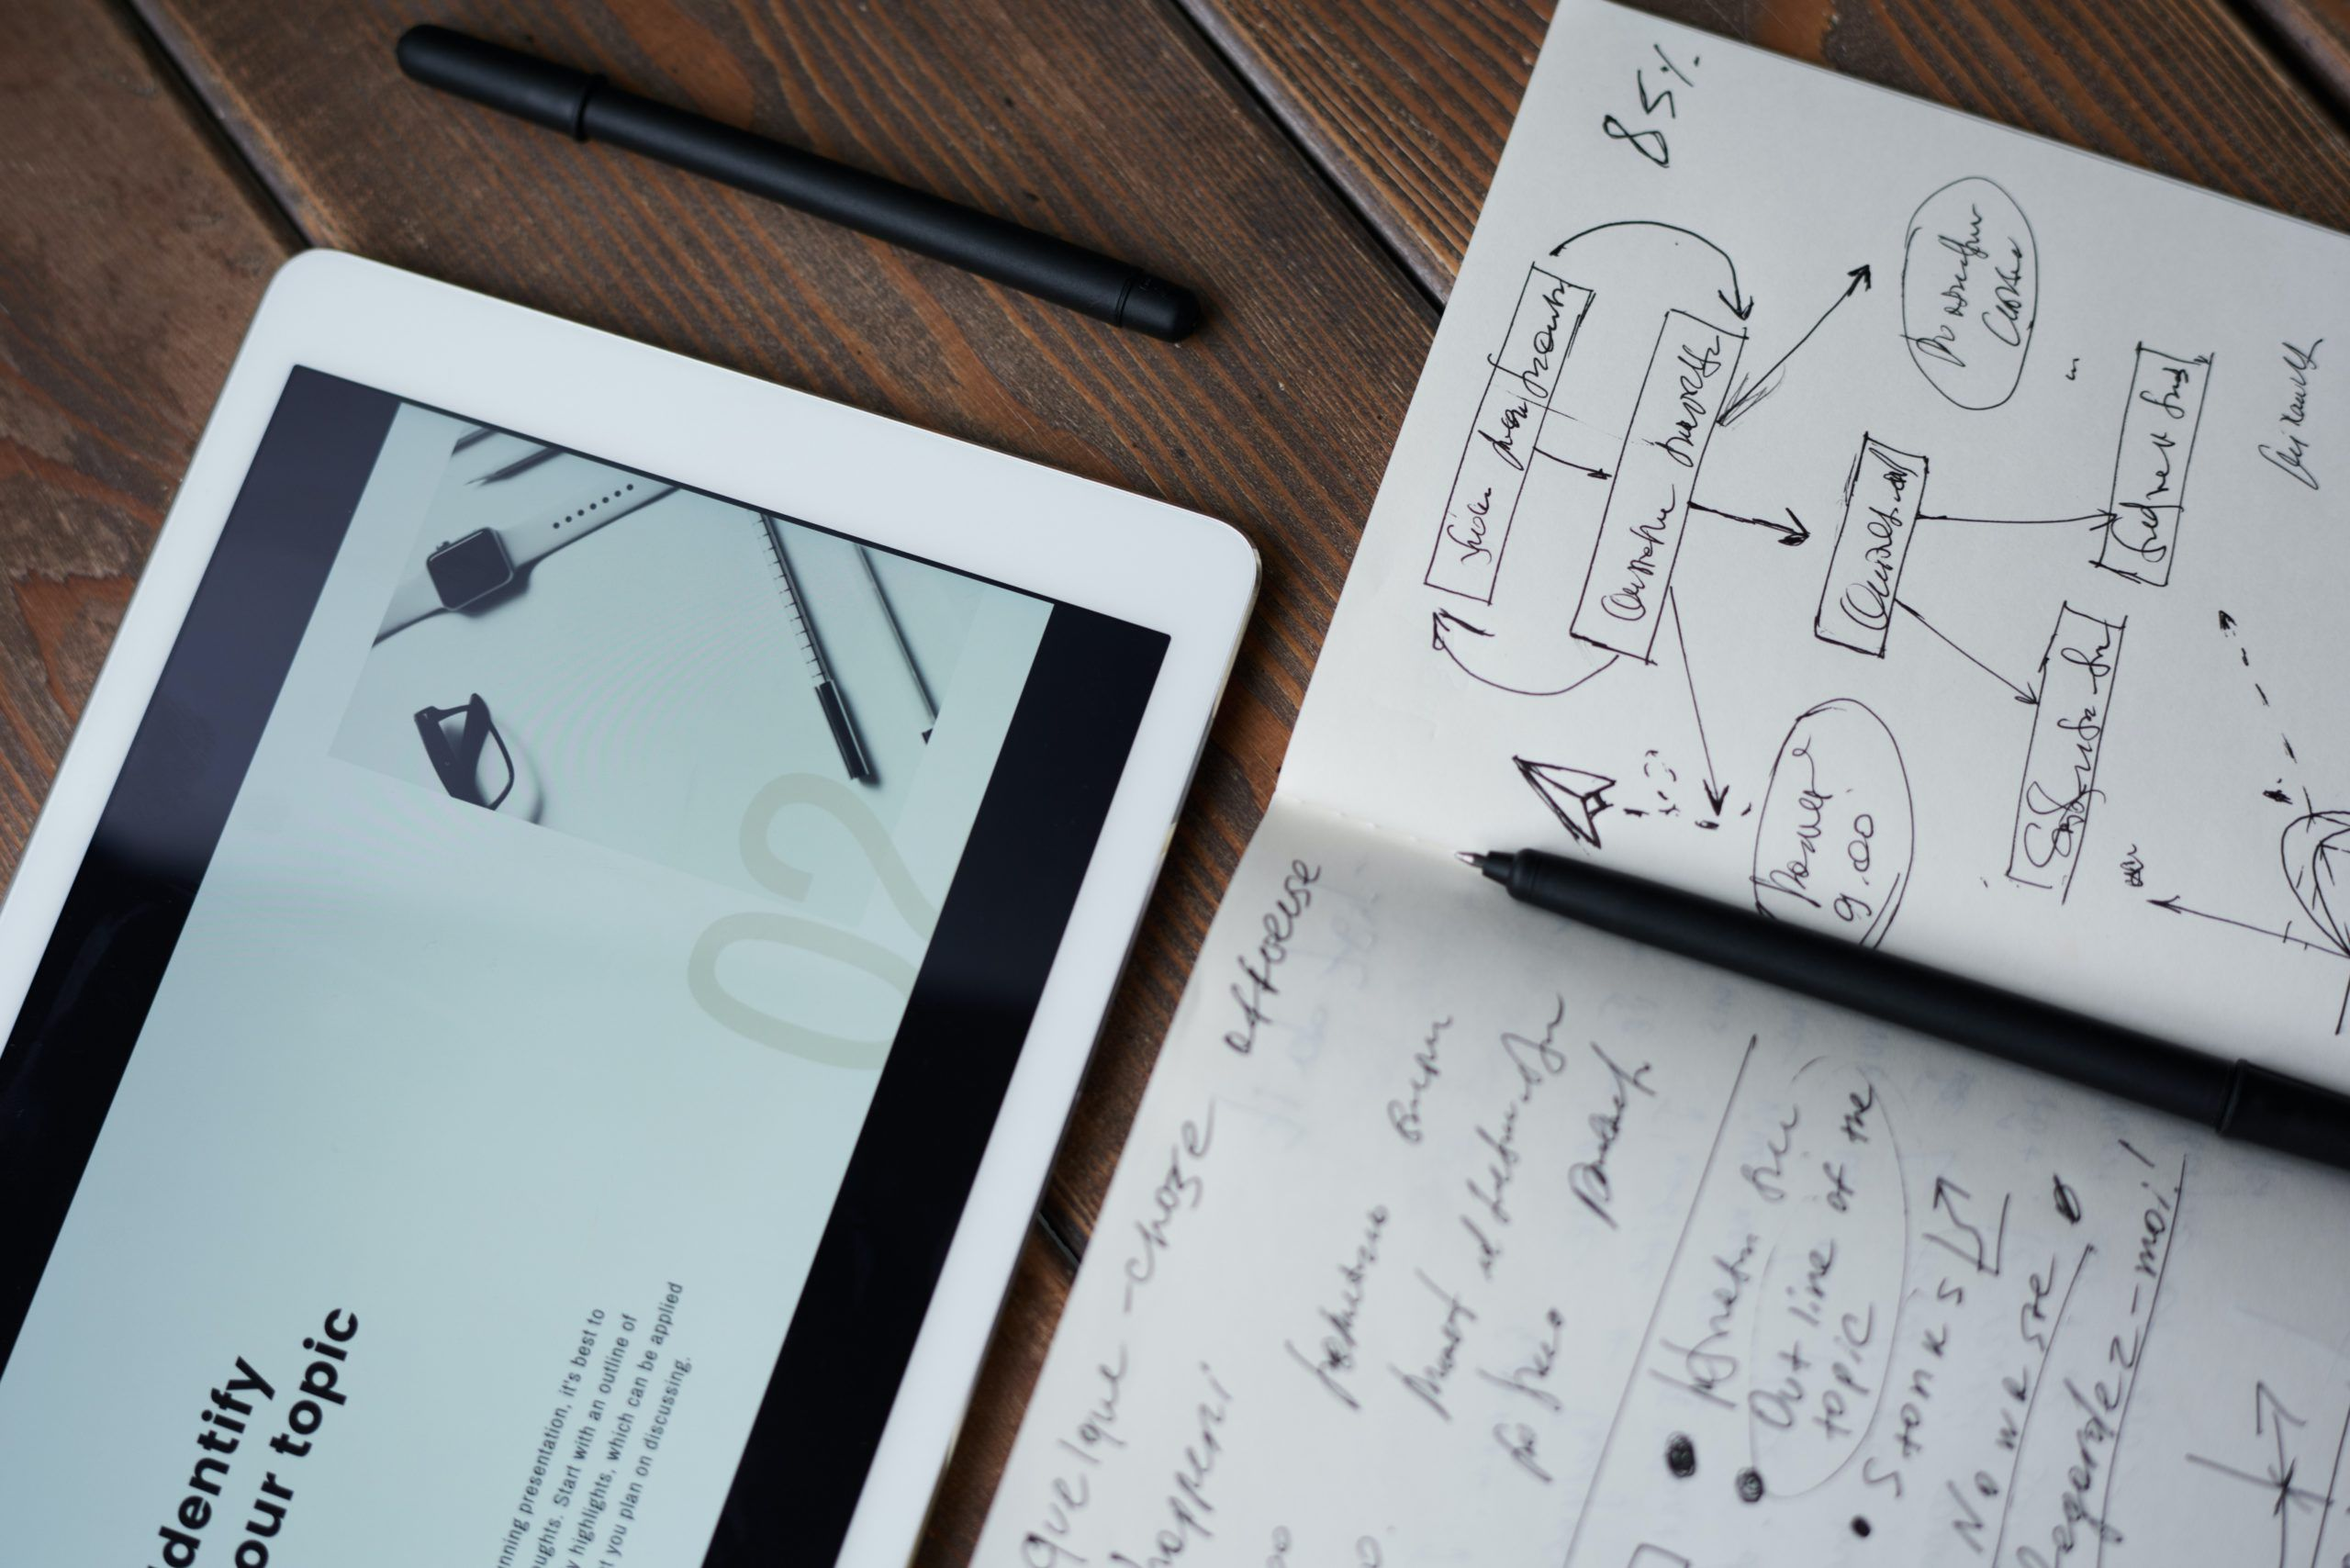 An iPad and a notebook with notes in it.